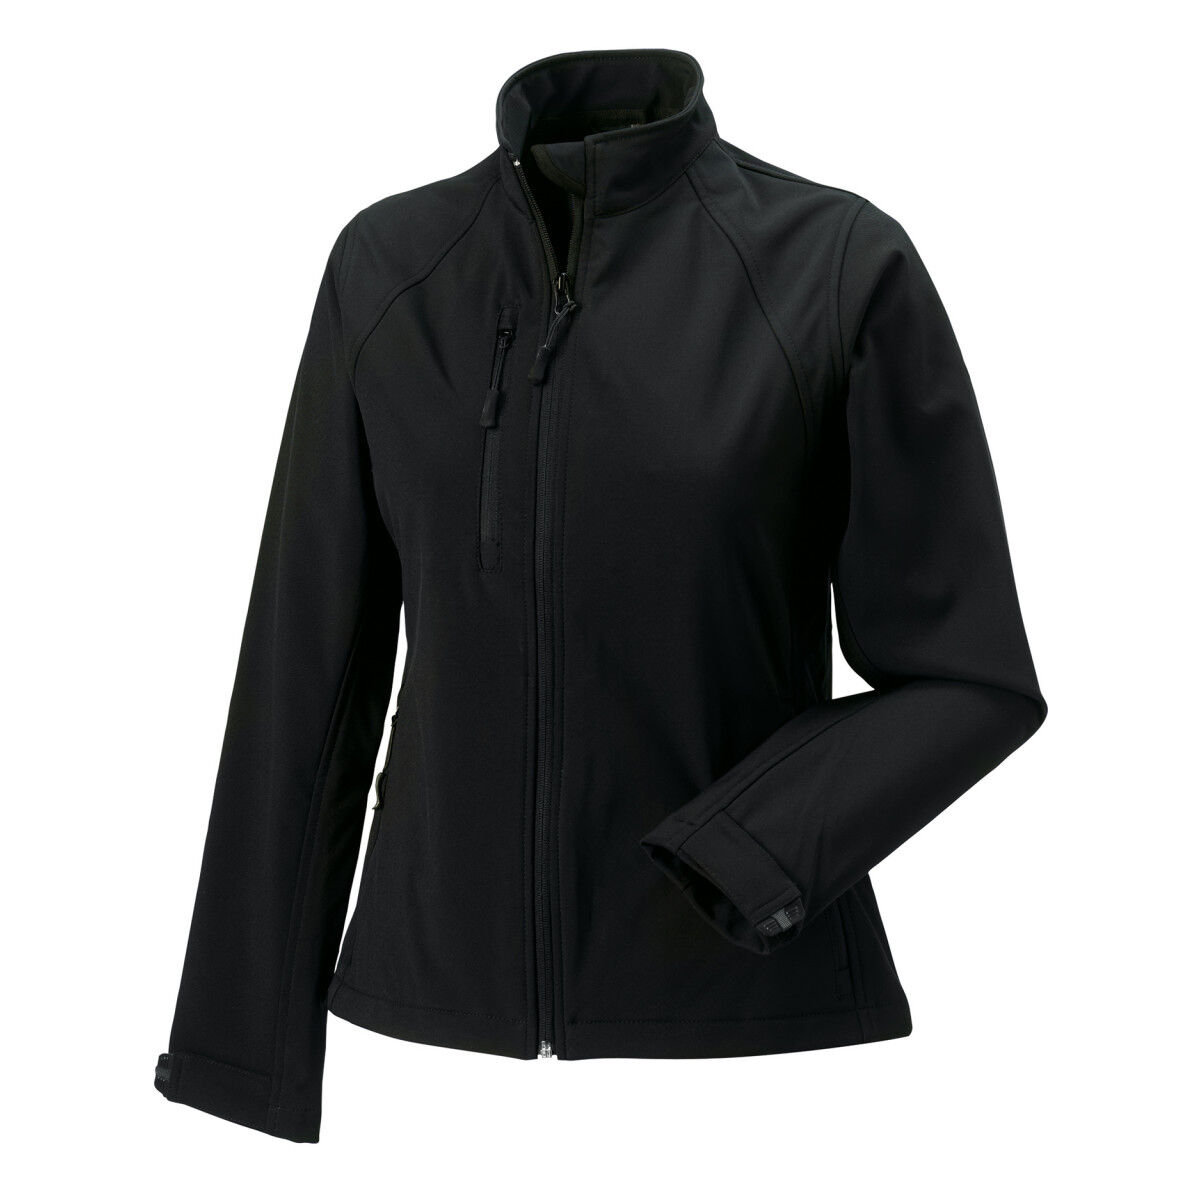 Russell Ladies' Soft Shell Jacket Black